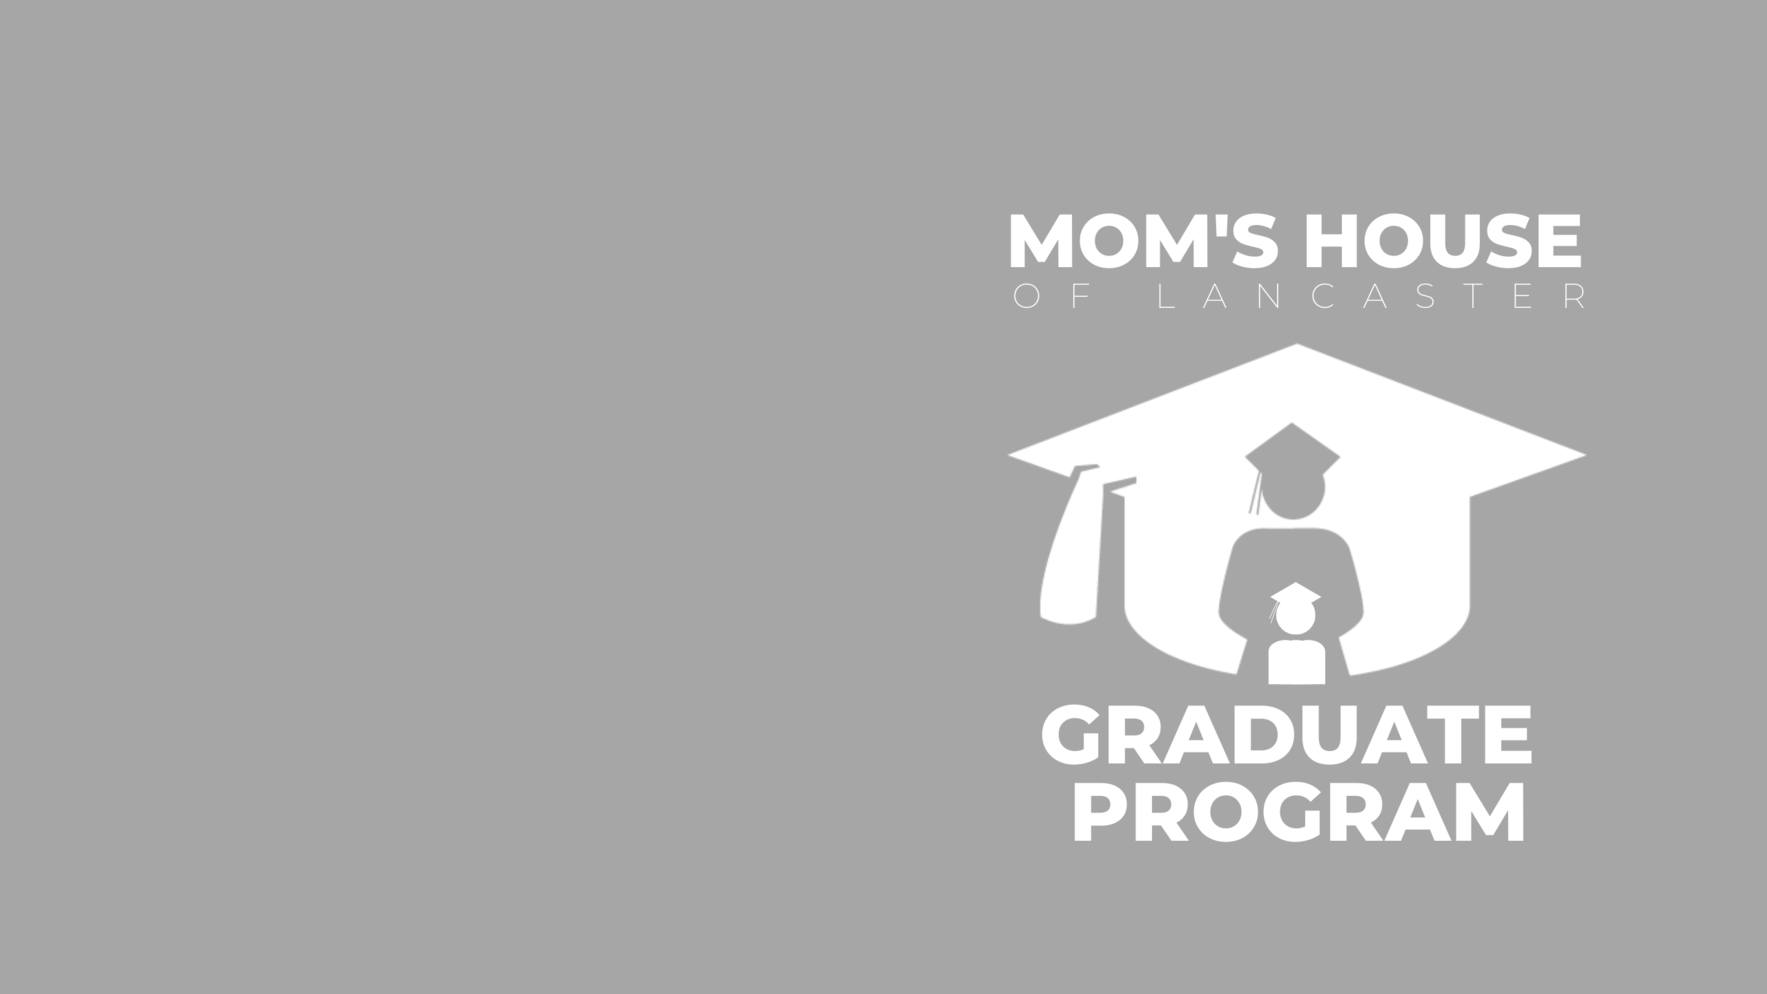 Mom's House wants to see you AND your child succeed and have a bright future! image